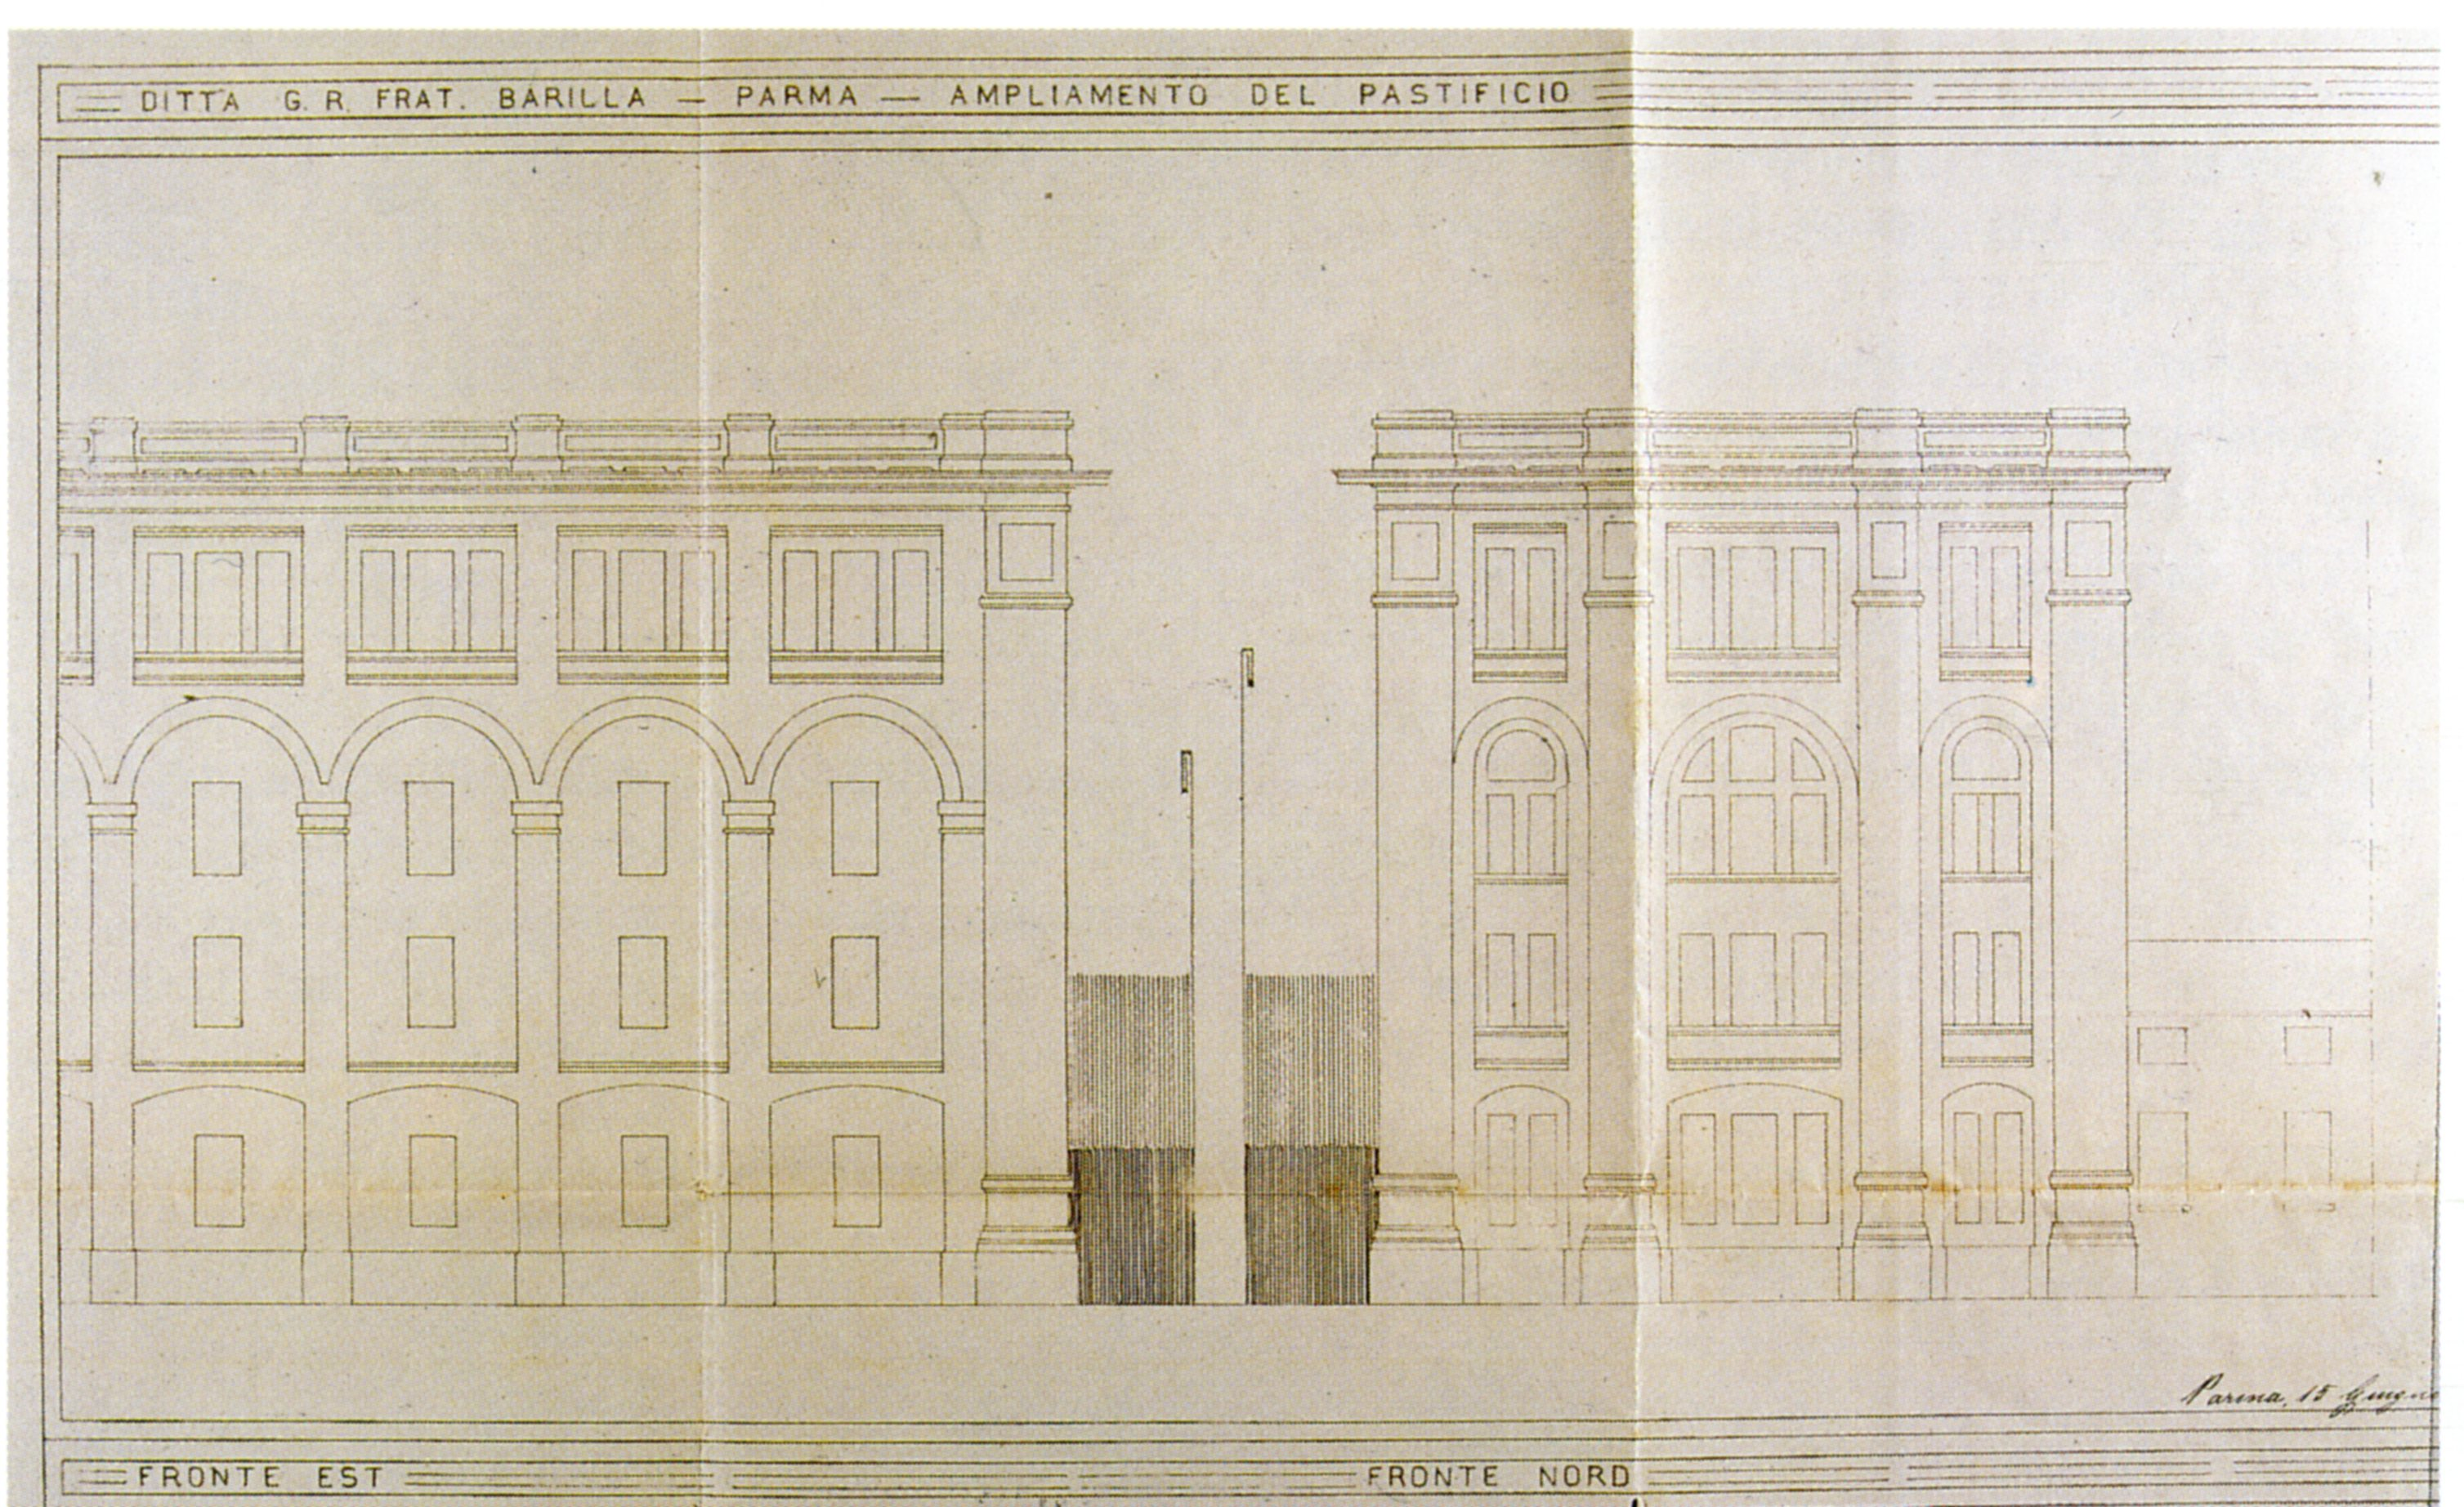 Camillo Uccelli, Extension of the Pasta Factory, 1922: east and north perspective designs [ASCPR, building licenses, 1922/172].